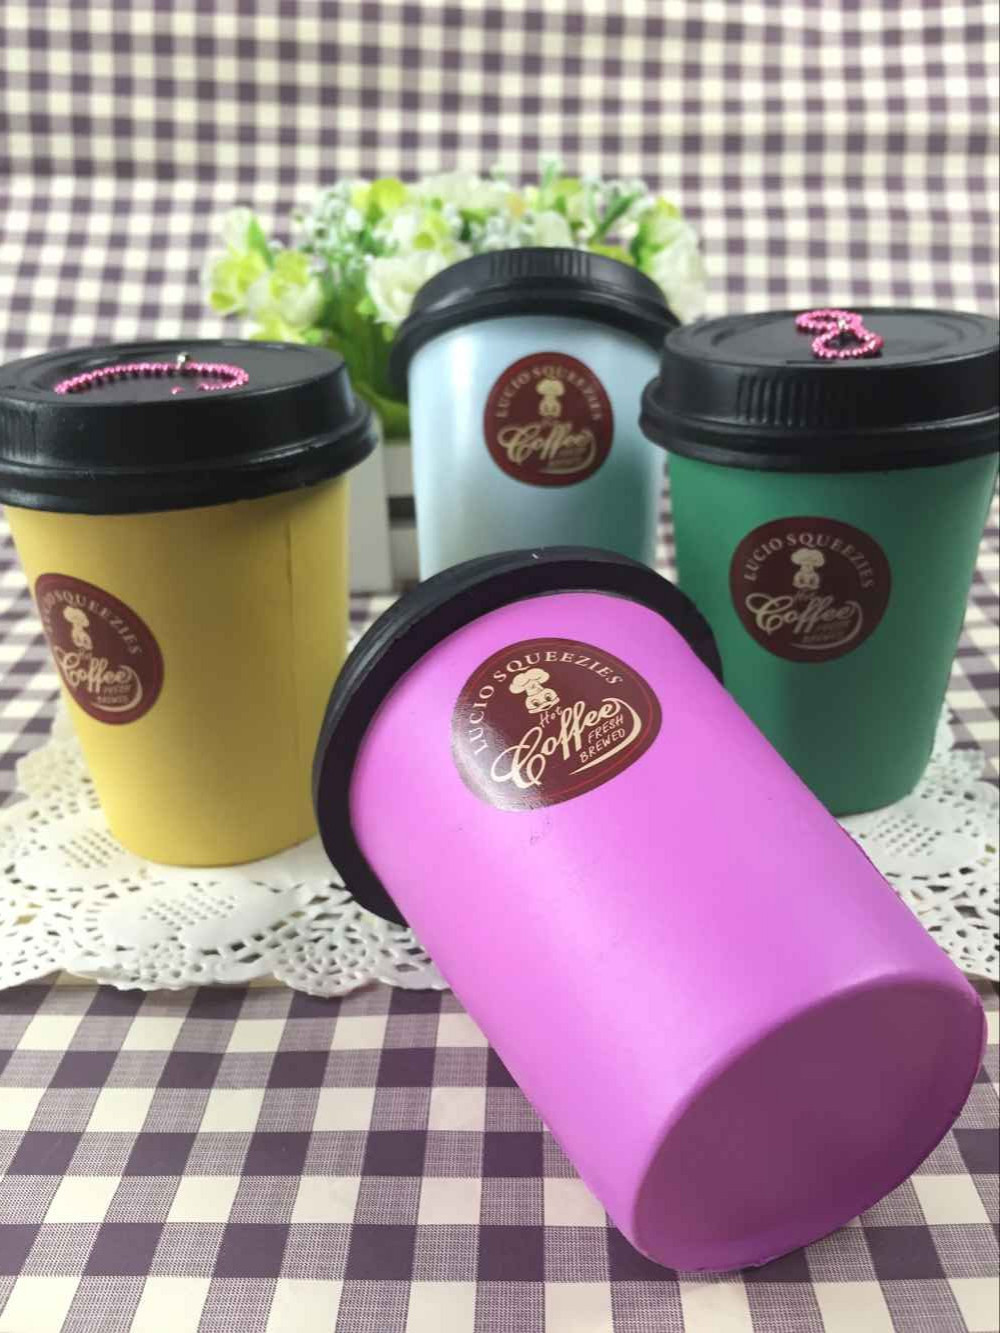 Lucio squishys 20pcs/Lot original package rare Coffee Cup squishy Toys Wholesale Cute Jumbo Squishies phone Charm Kawaii Toy 310